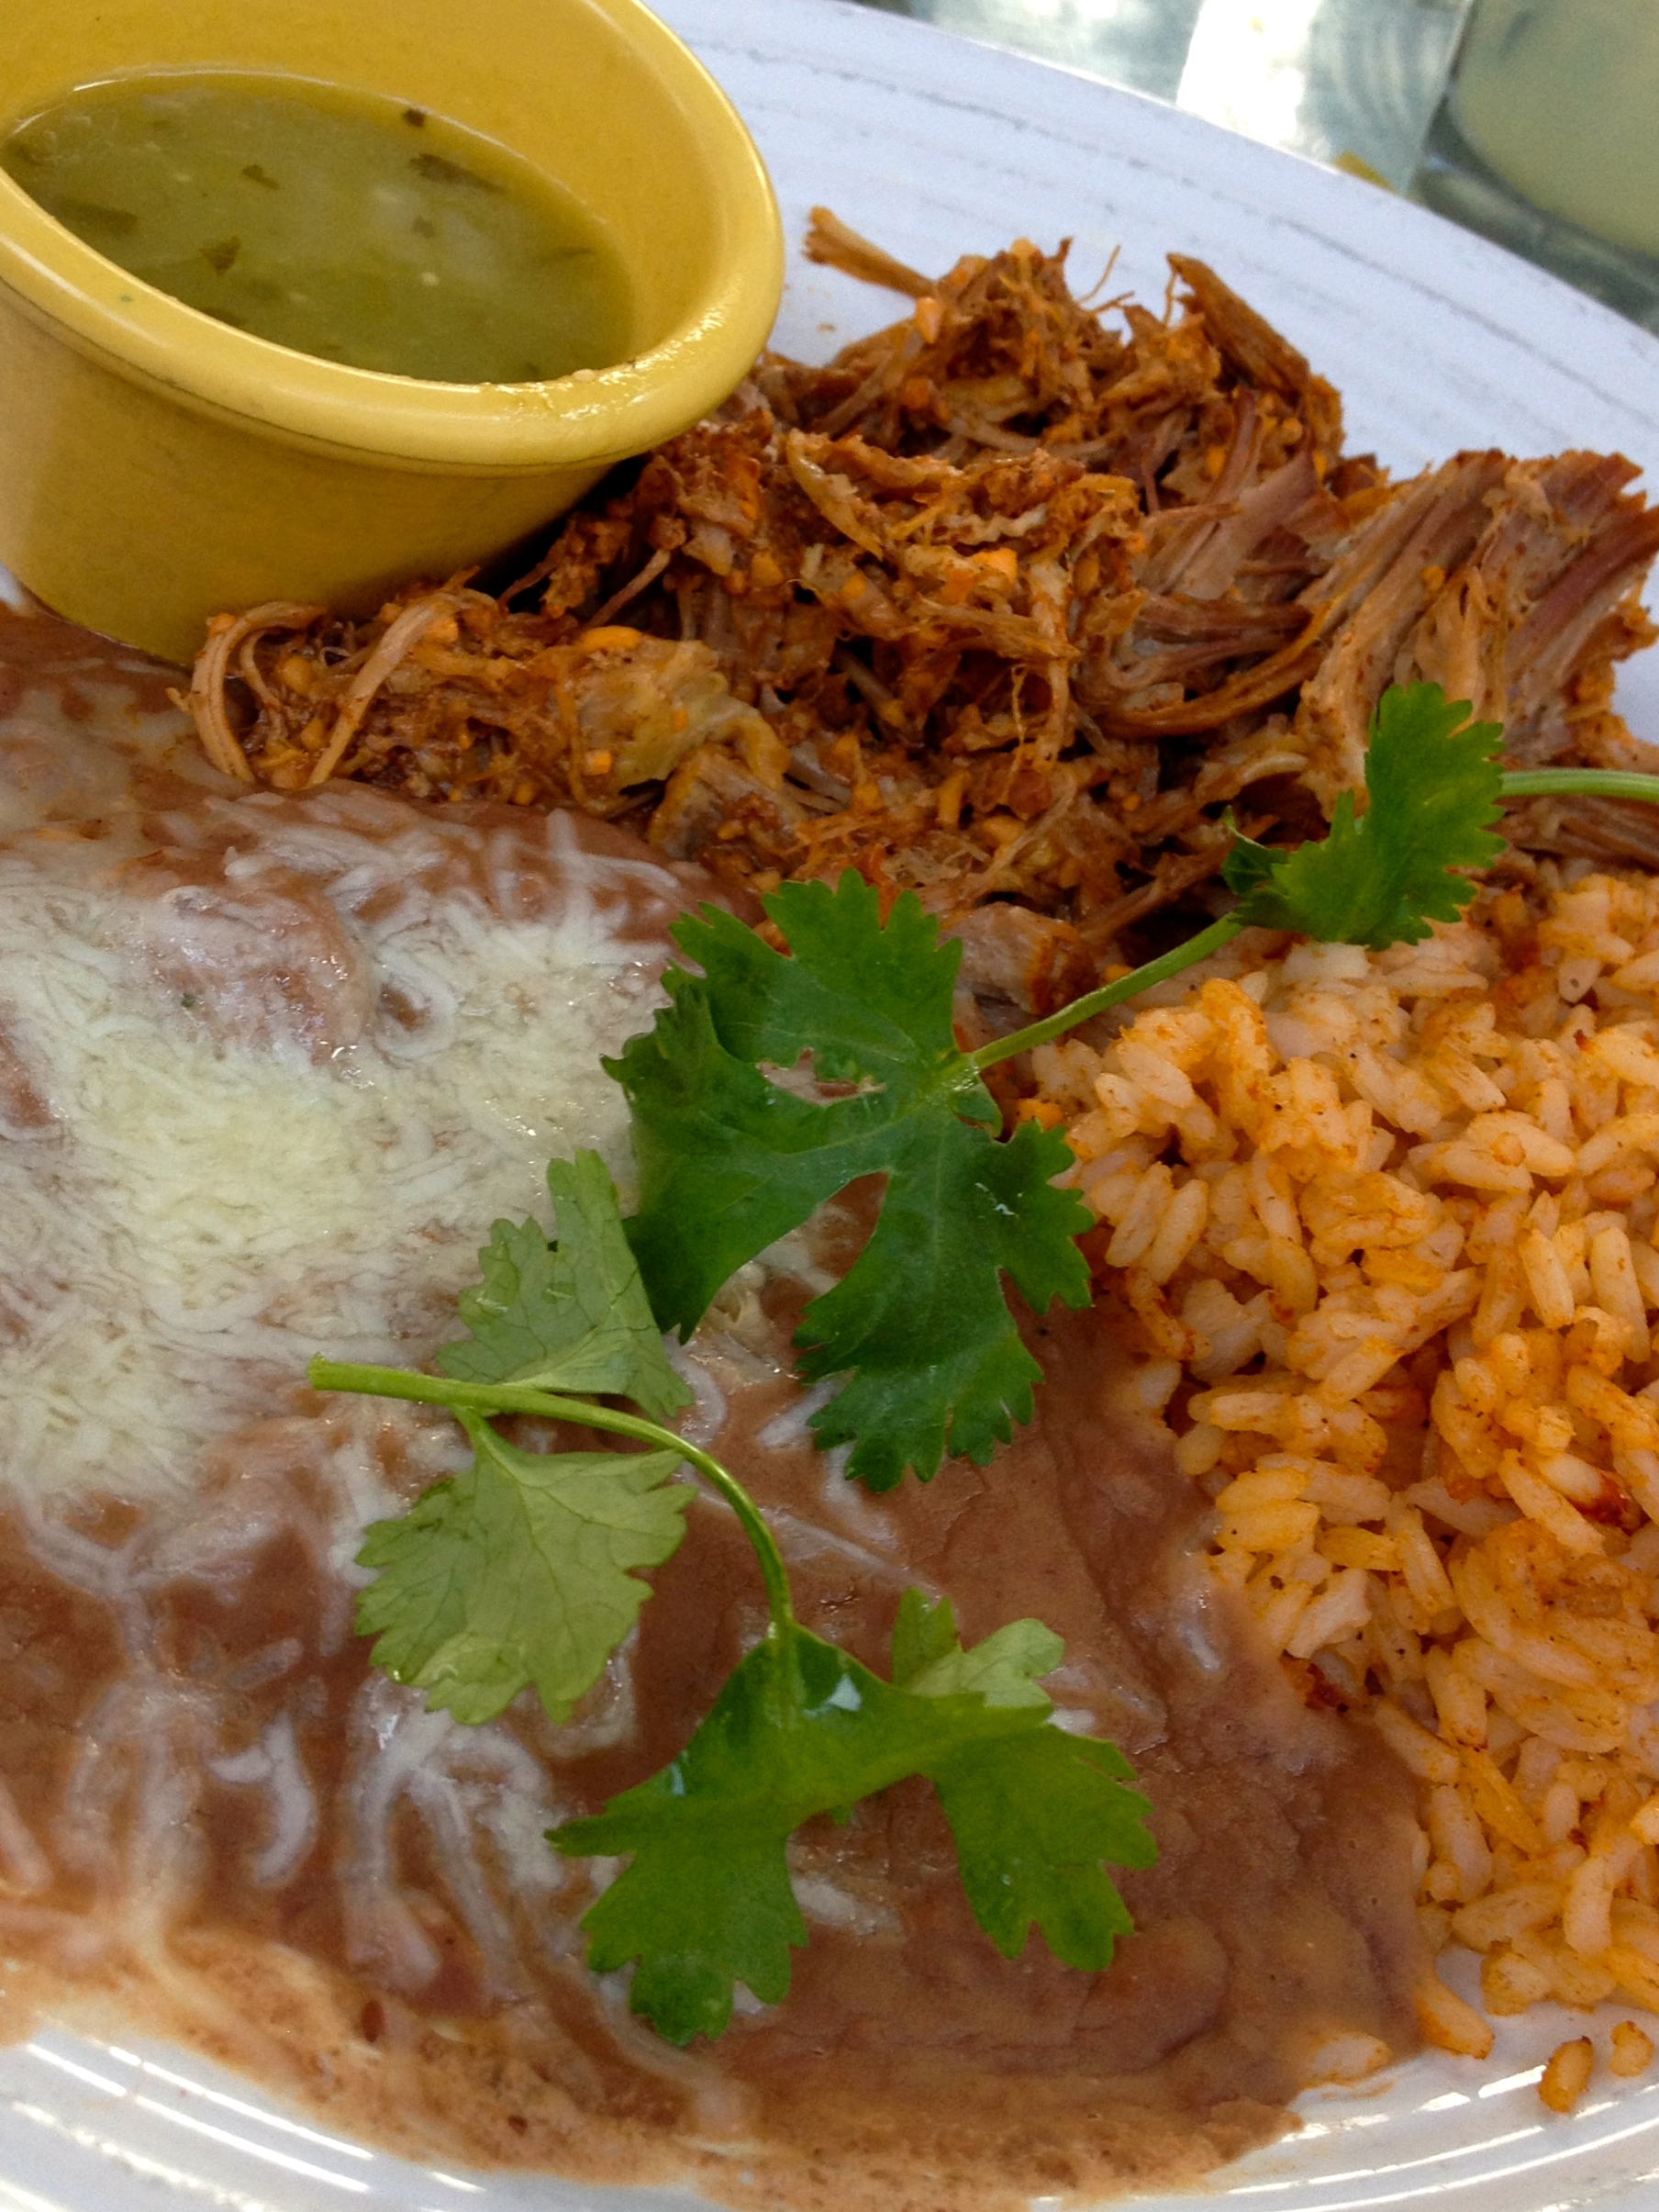 Raulitas Shredded Savory Pork